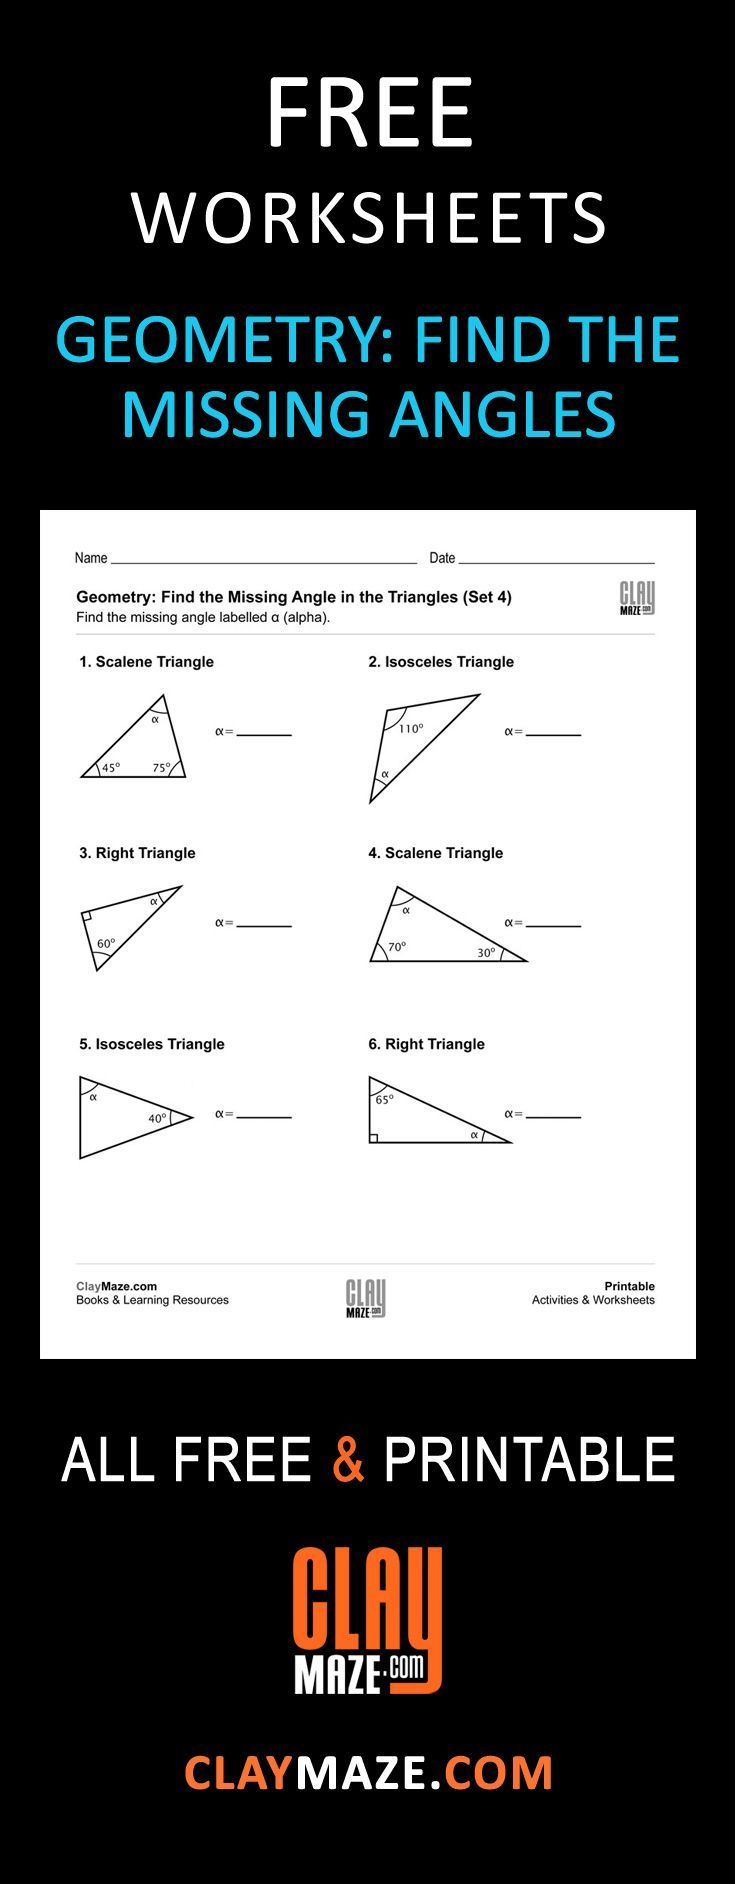 Free And Printable Geometry Worksheet Find The Missing Angles In The Triangles The Student Should Be Teaching Geometry Geometry Lessons Geometry Worksheets